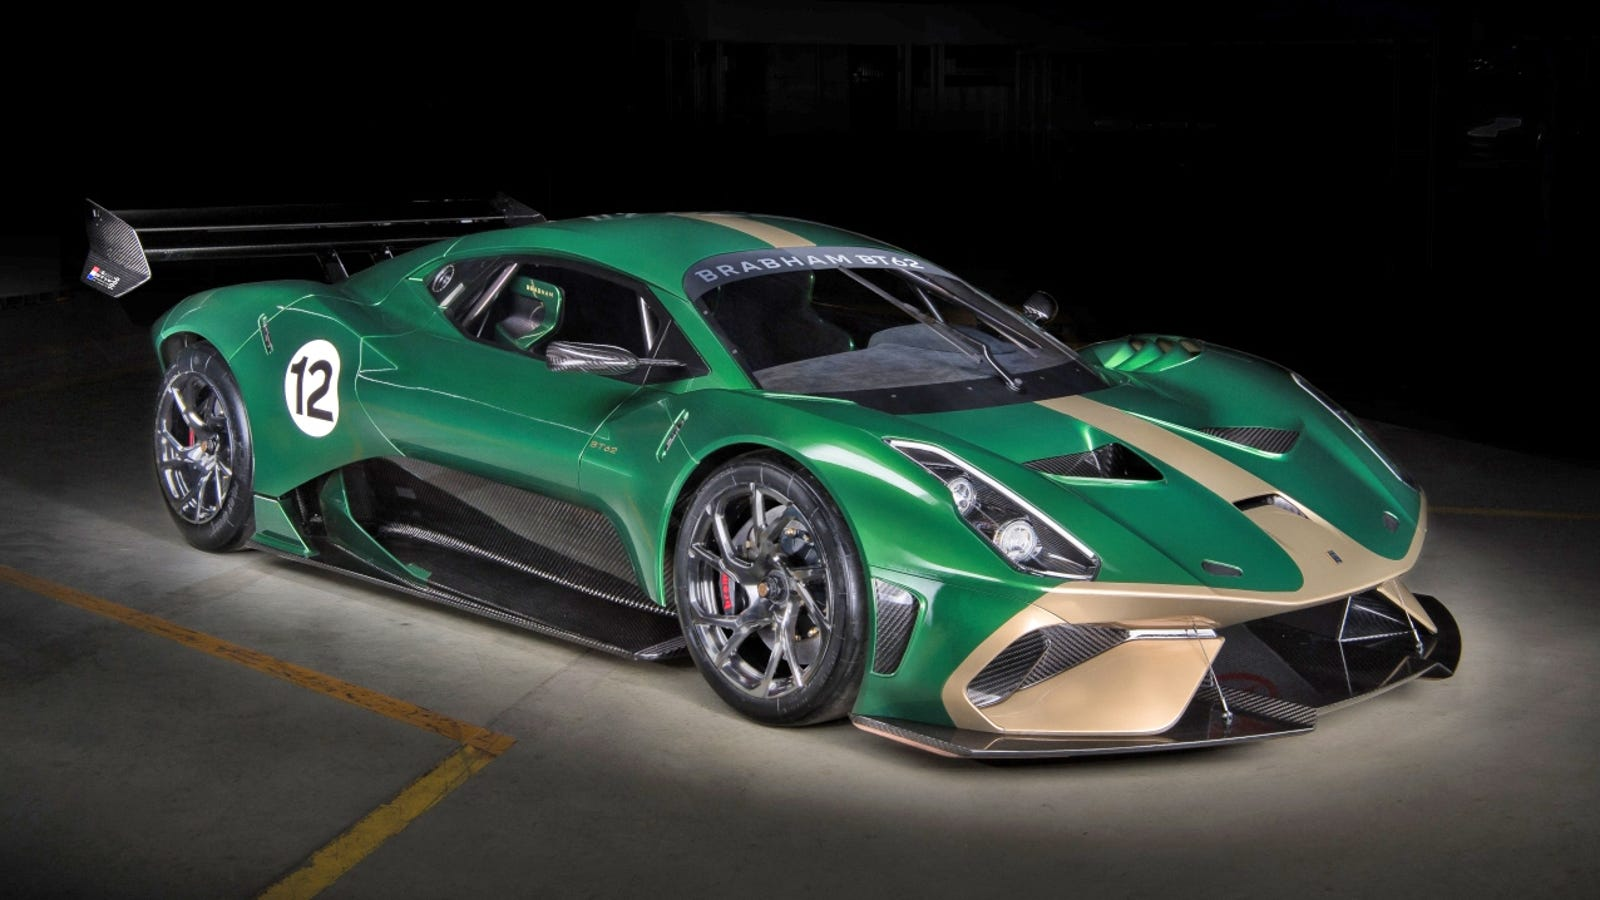 The $1.3 Million Brabham BT62 Track Car Can Be Made Road Legal for Just $200,000 Extra